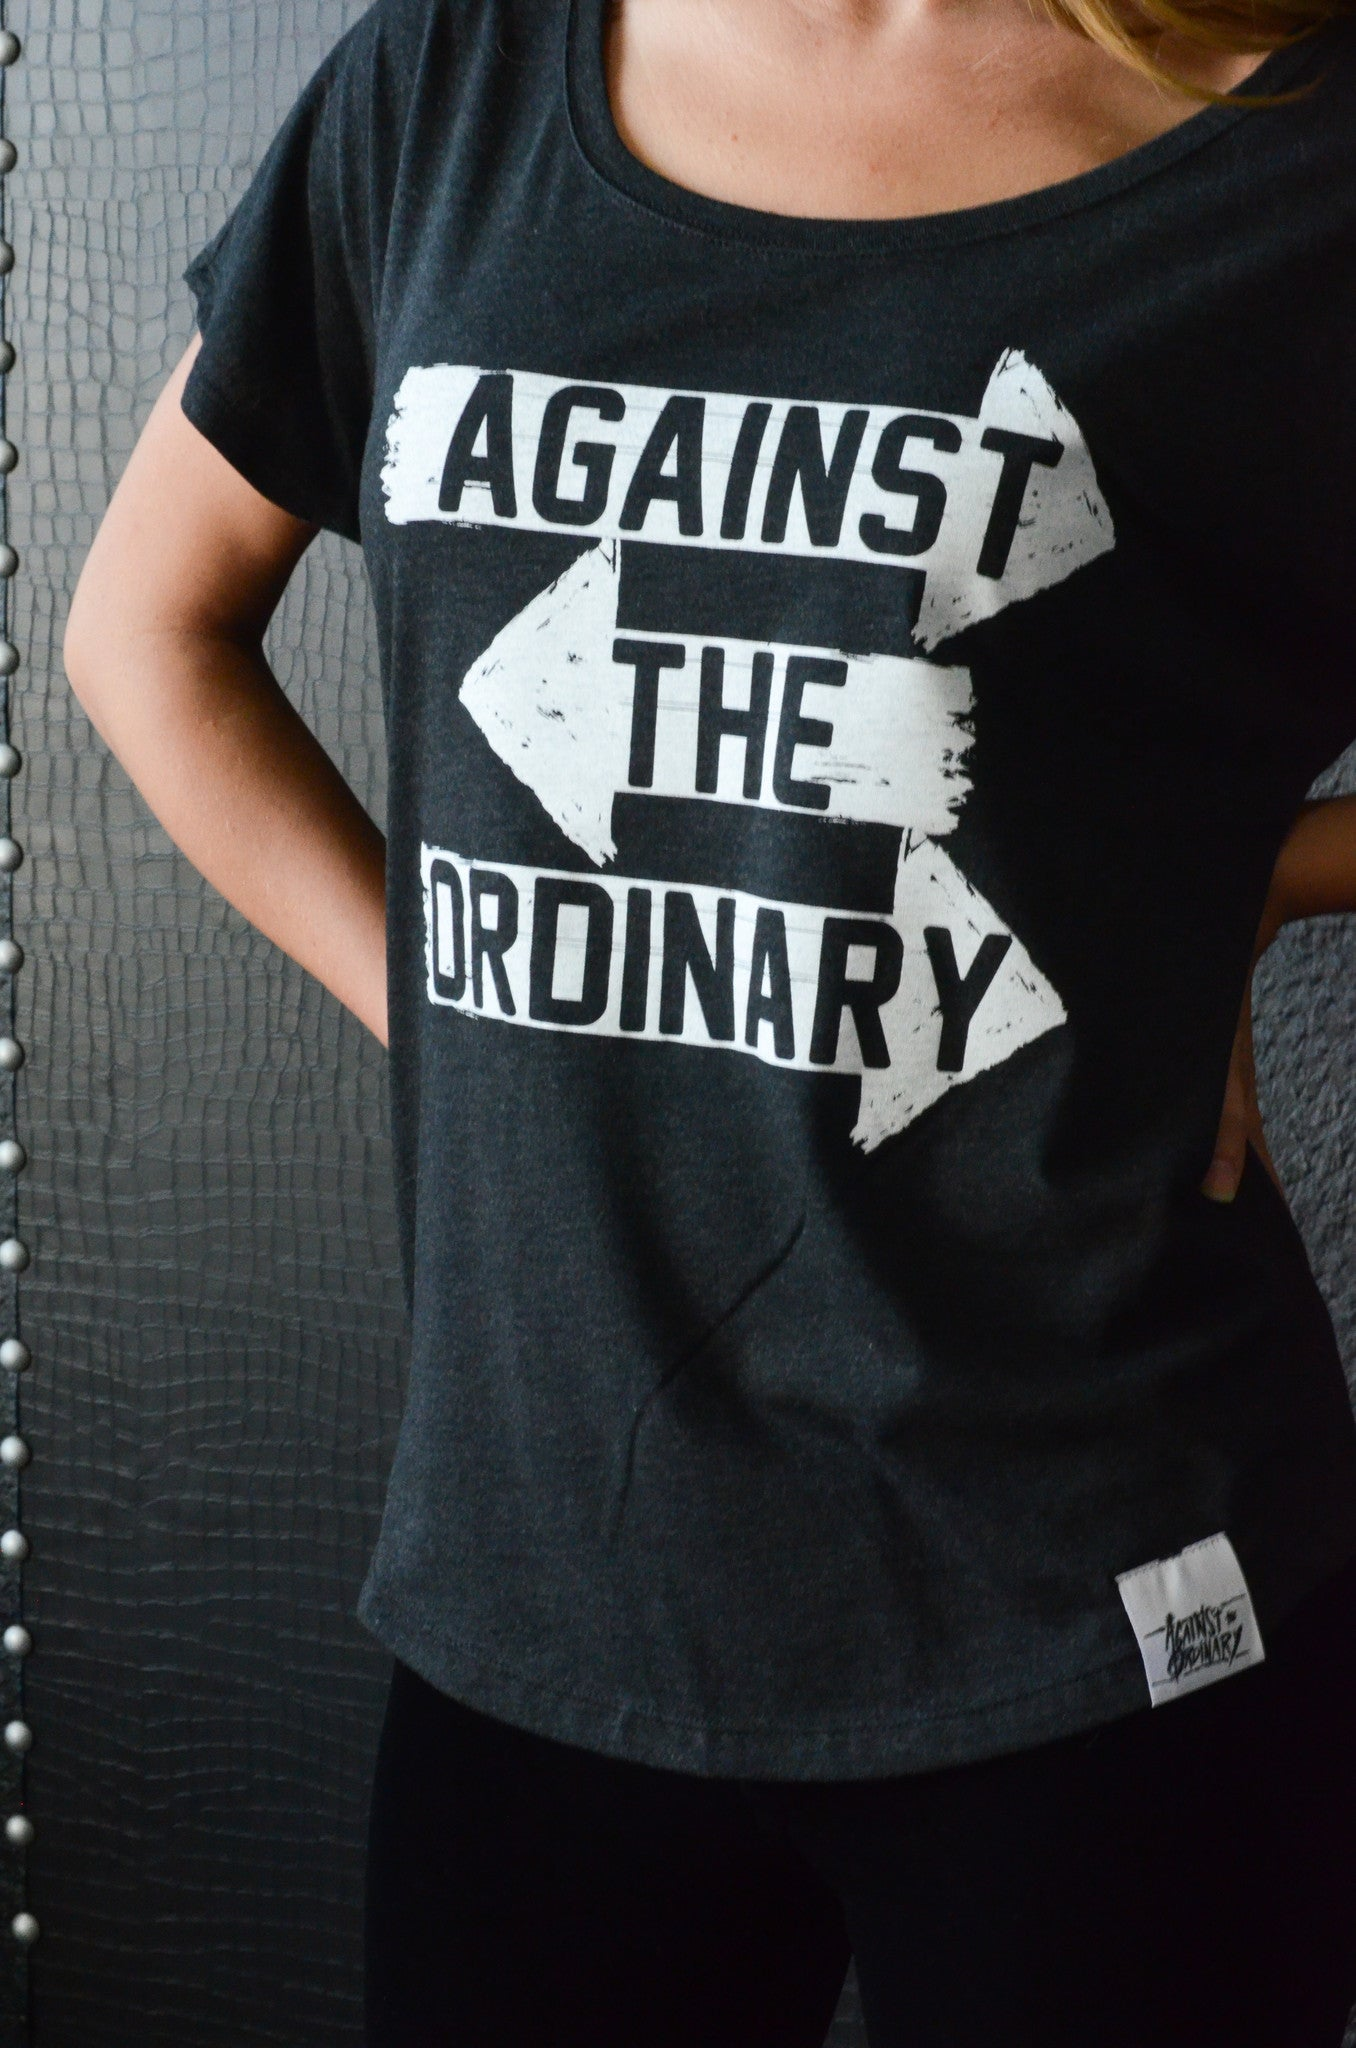 AGAINST THE ORDINARY Women's Short Sleeved Scoop Neck Tee with ARROW Graphic